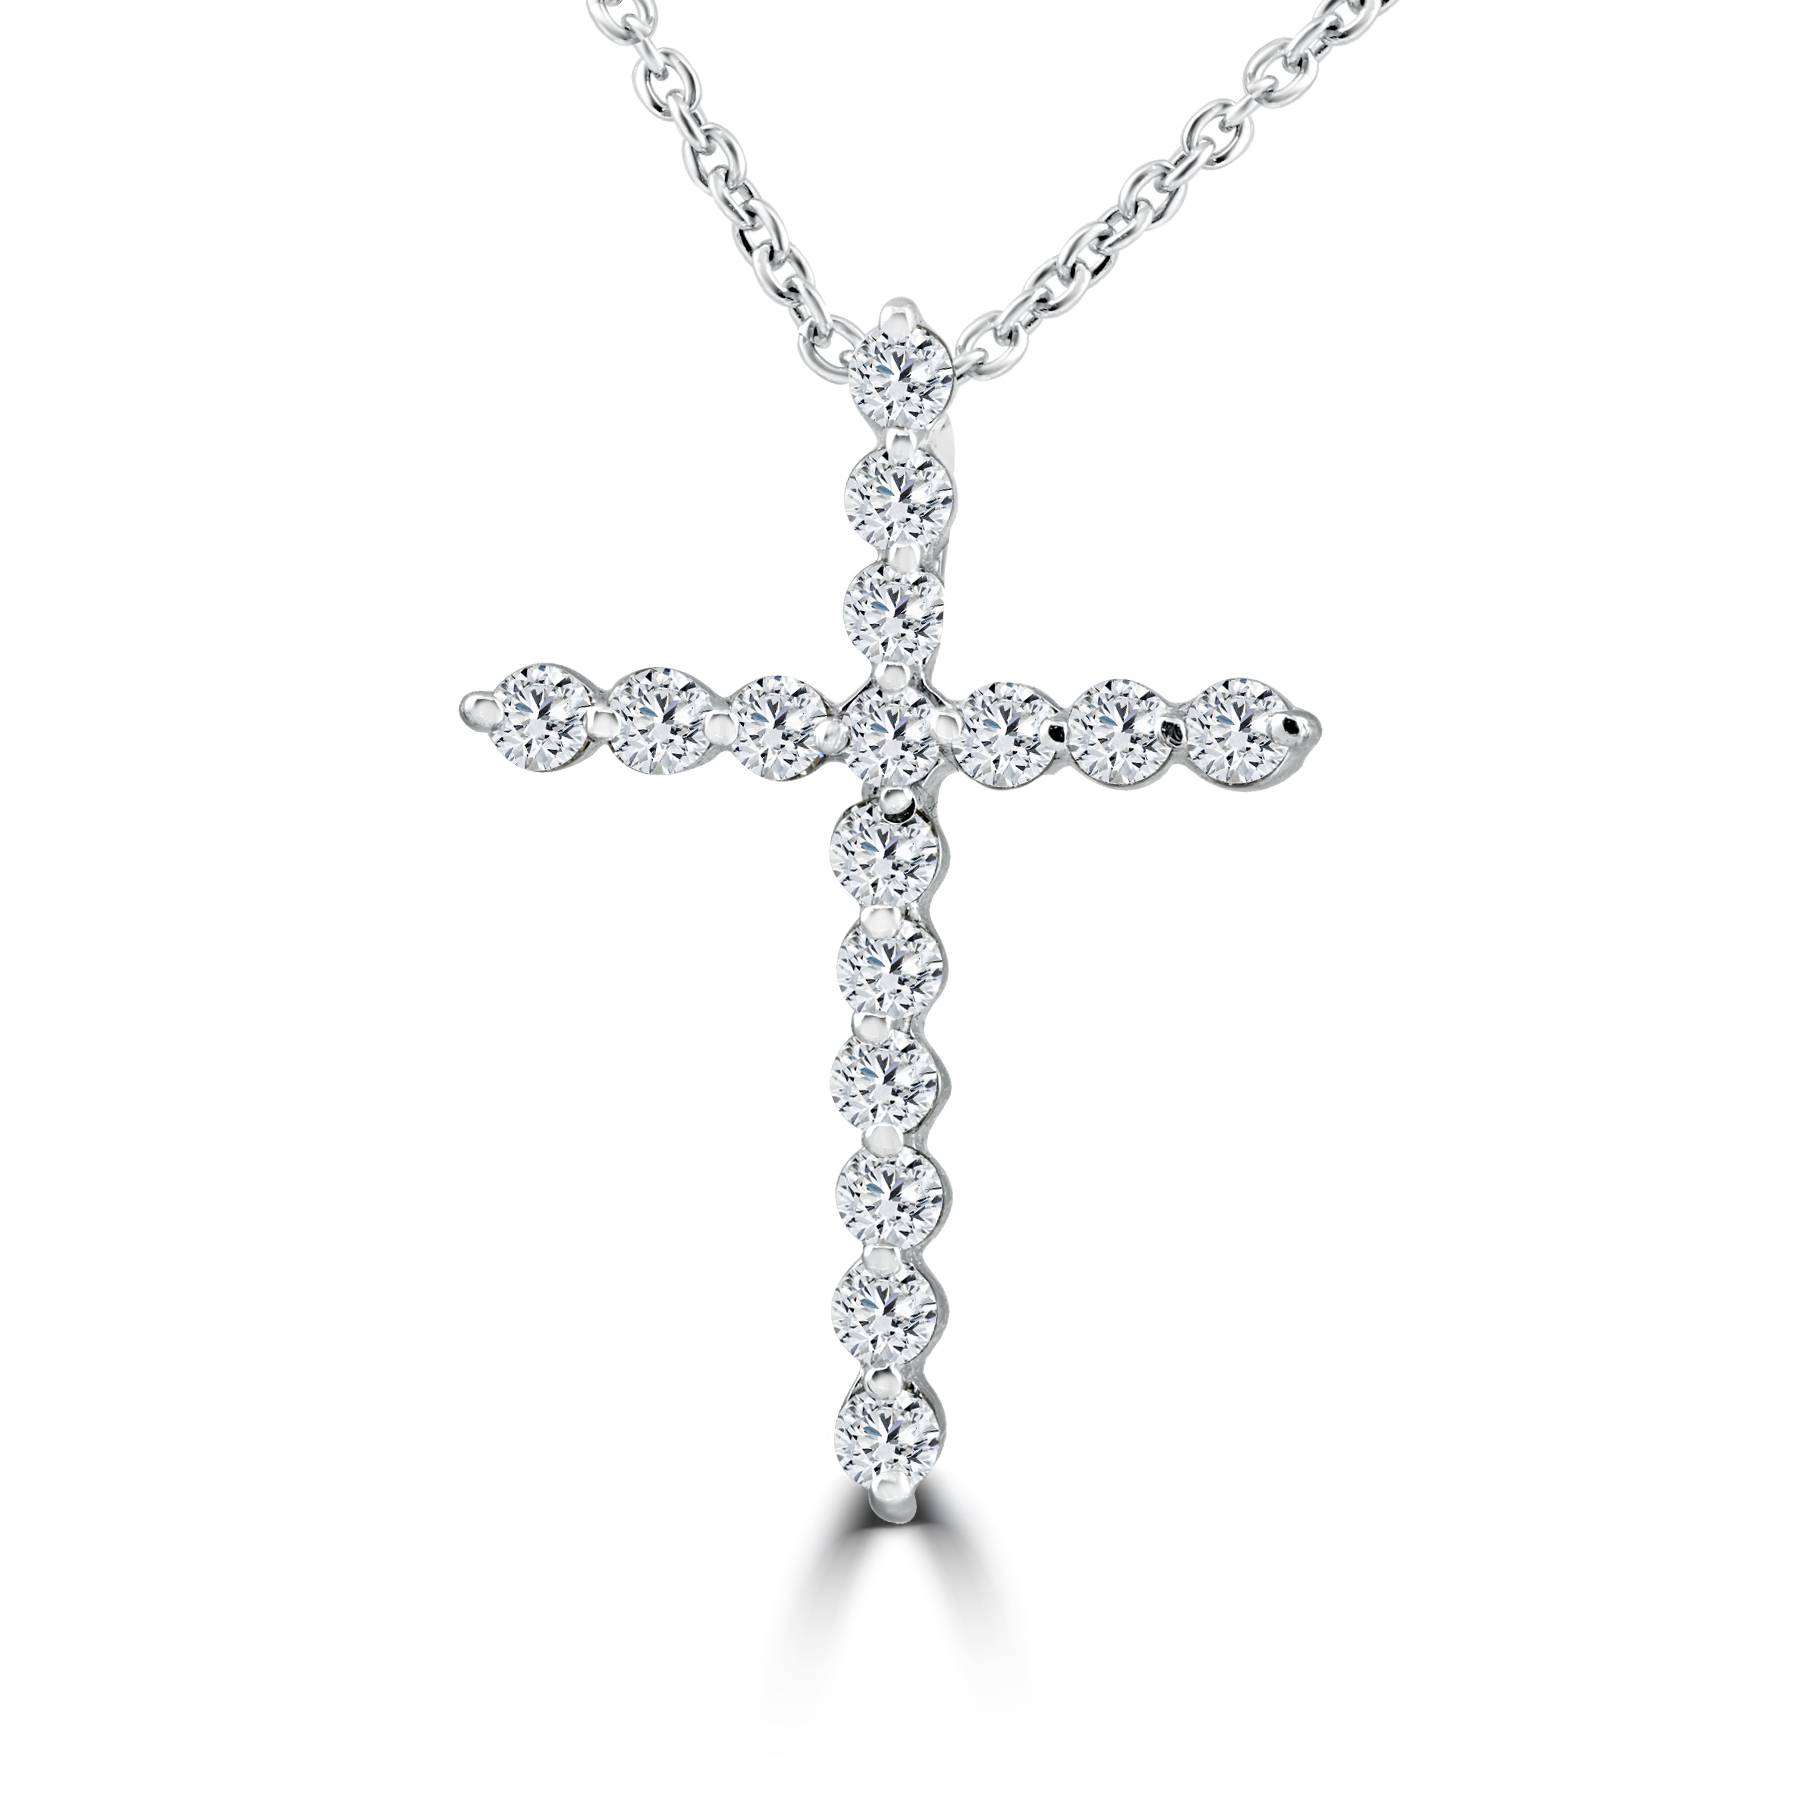 3 8ct real diamond cross pendant white gold necklace ebay. Black Bedroom Furniture Sets. Home Design Ideas